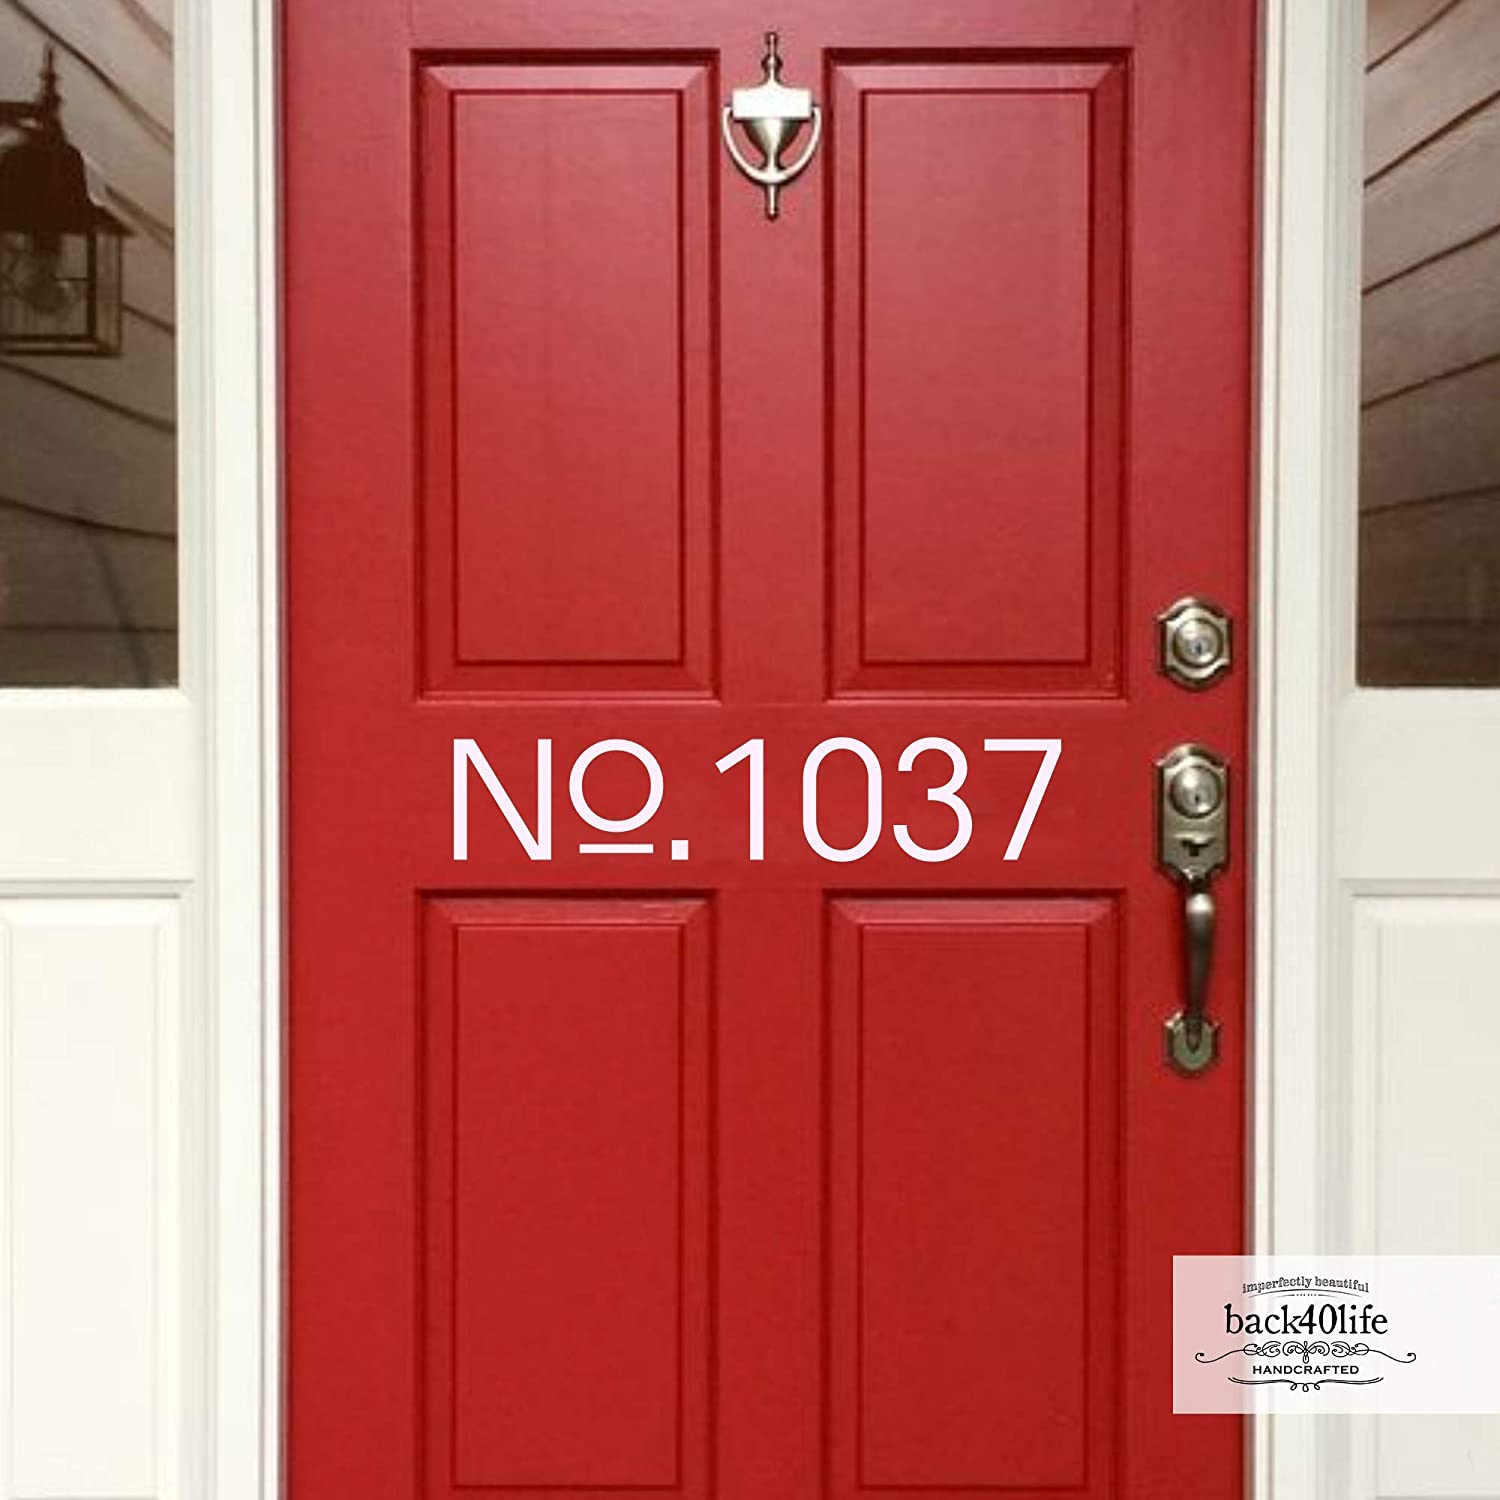 Back40life - shipfree House Number Max 66% OFF E-002f Decal Door